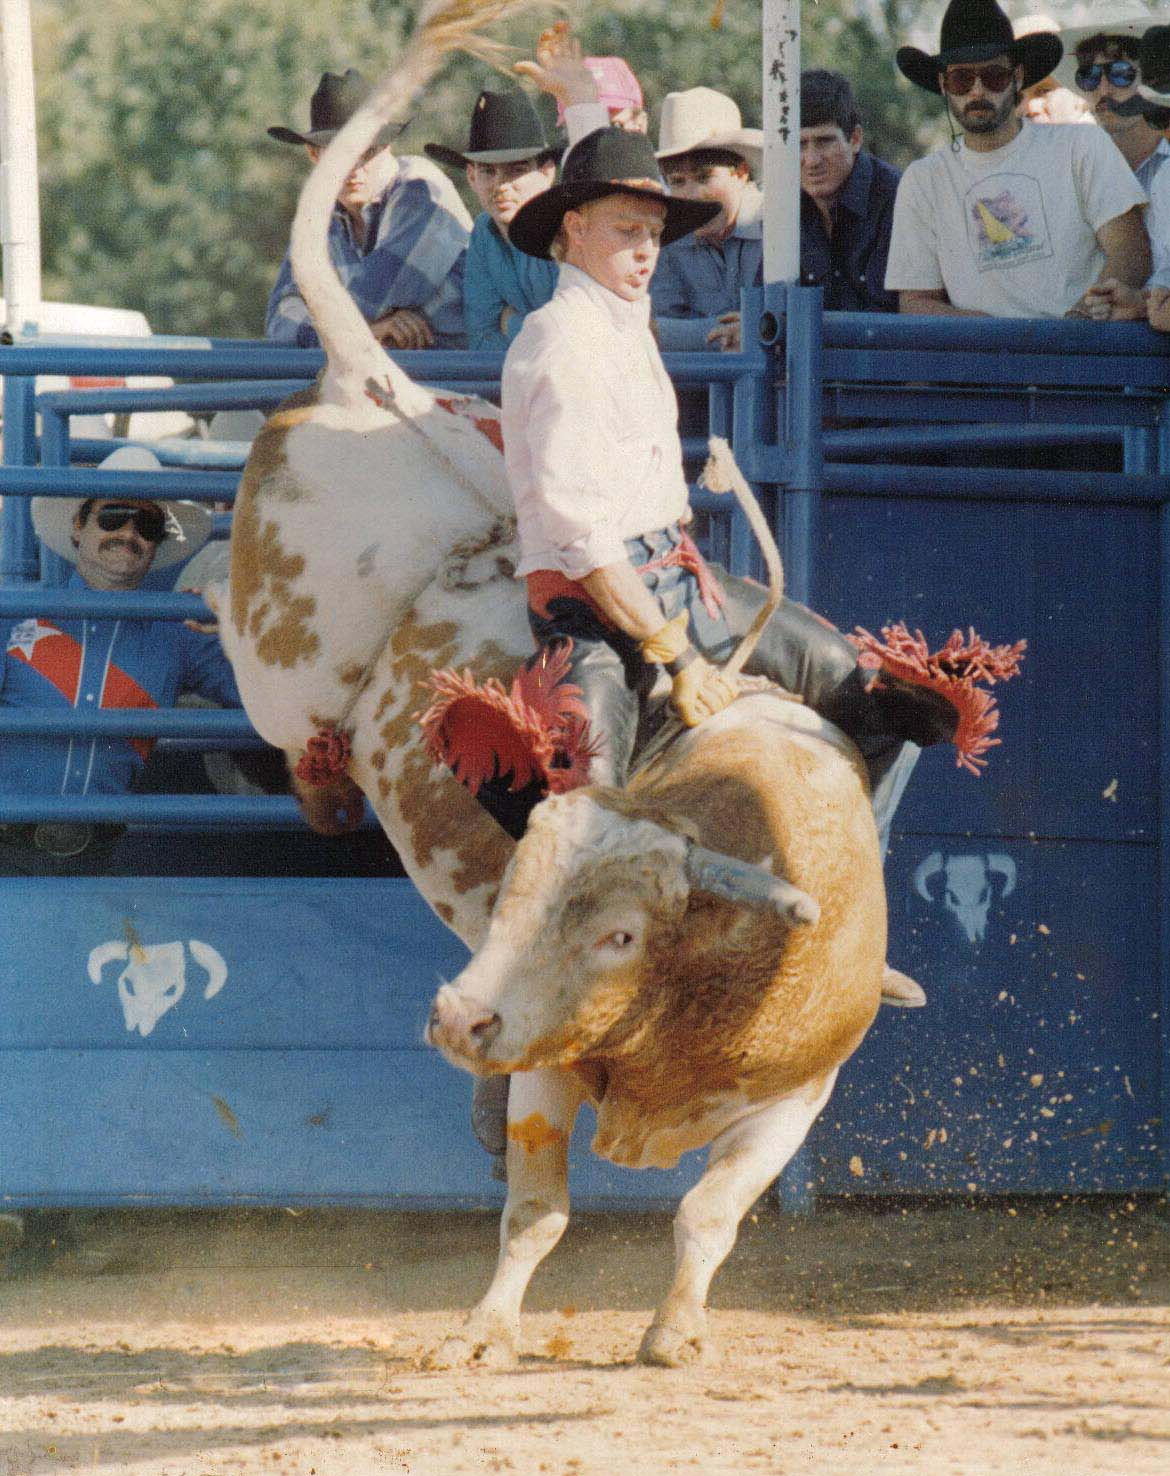 bull riding12 Little Boy Dreams About Pro Bull Rider